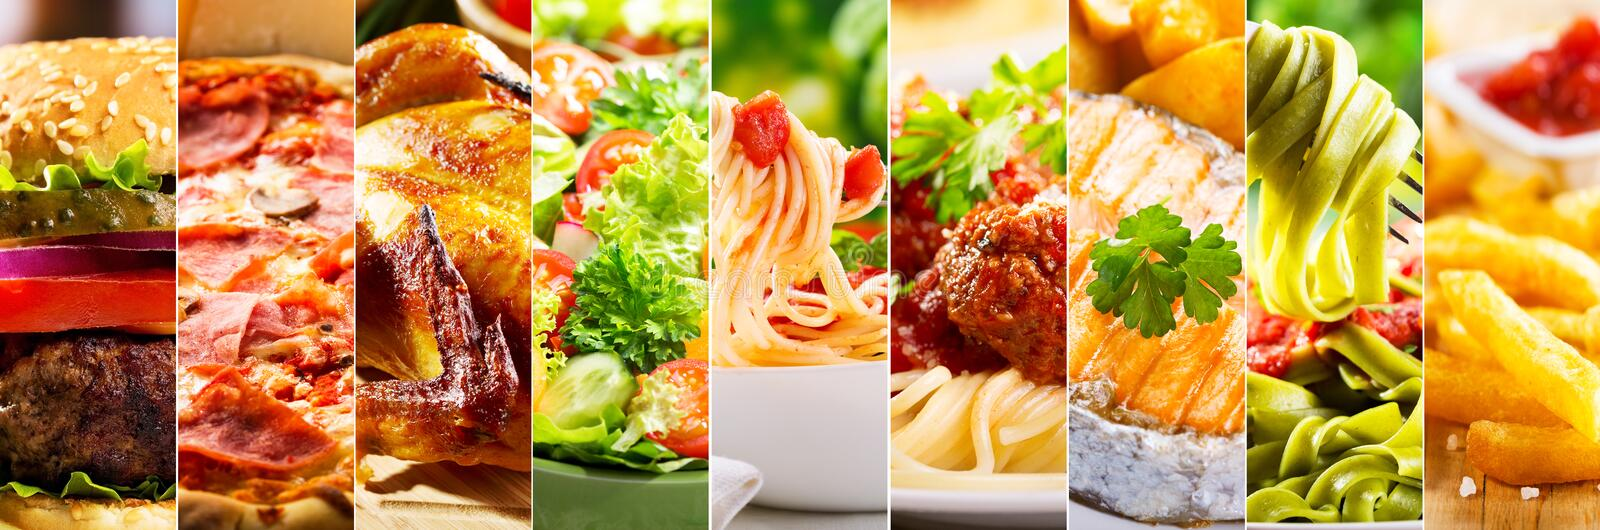 Collage of food products. Collage of various food products stock photo